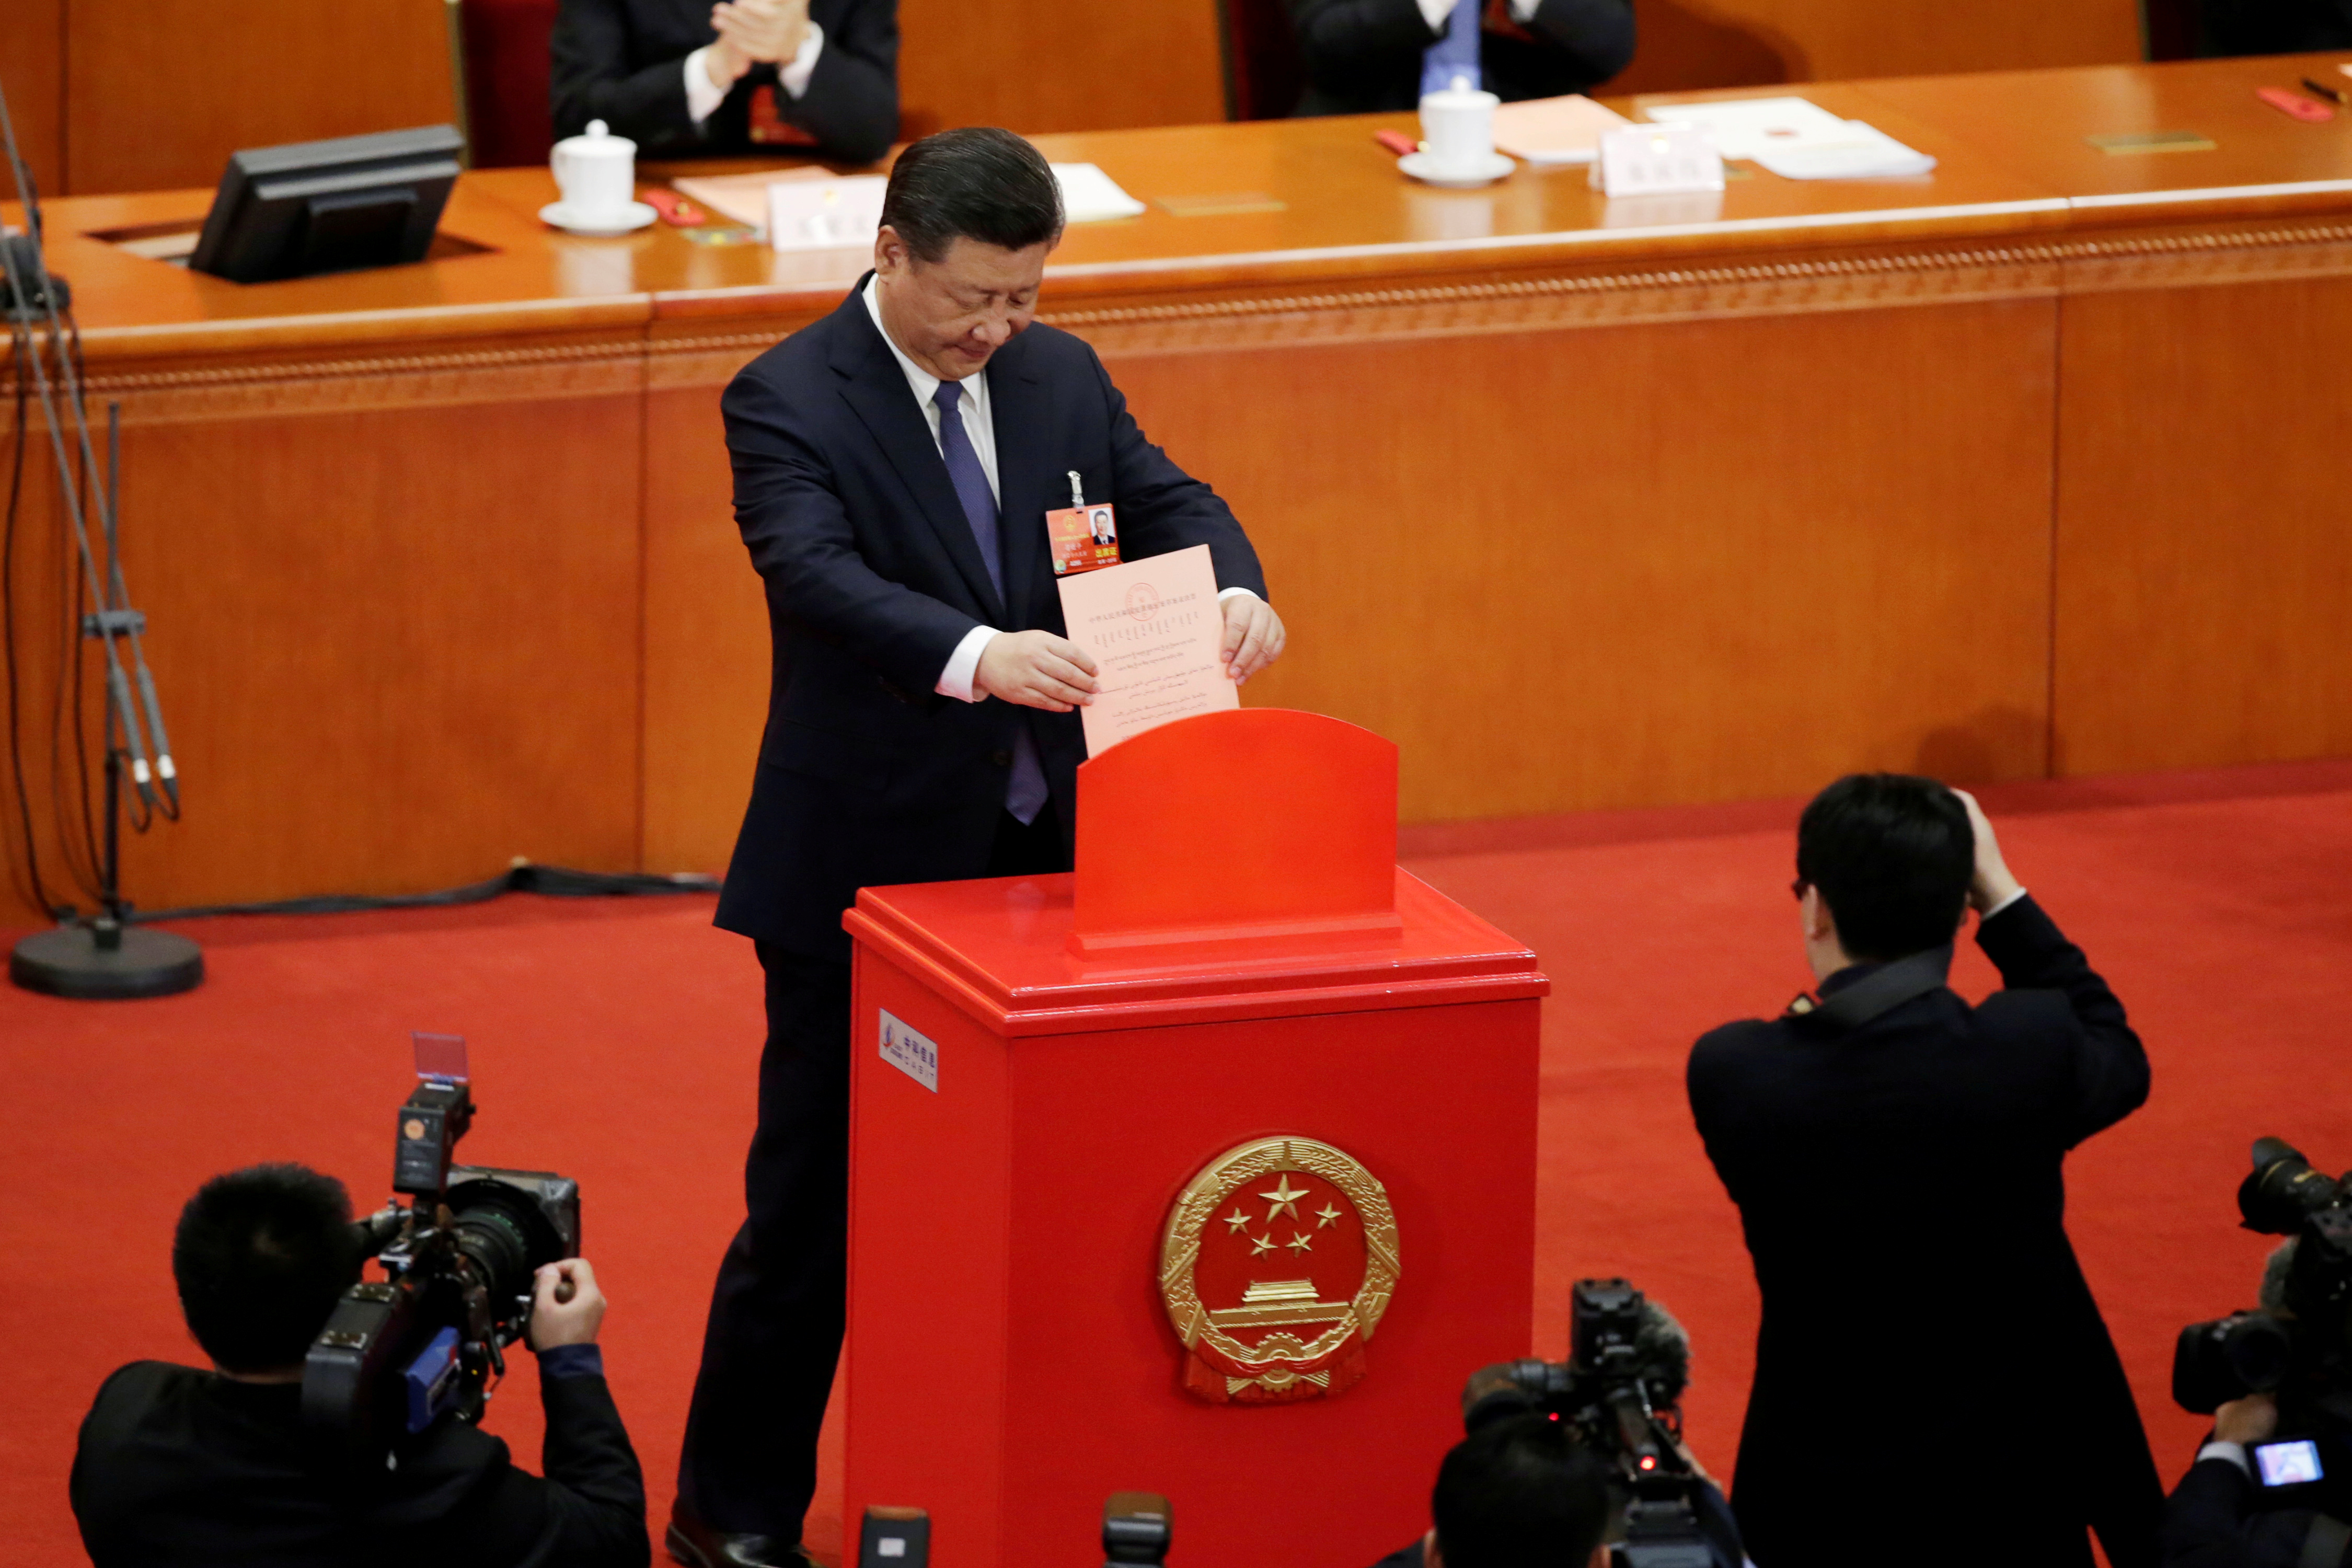 Chinese President Xi Jinping drops his ballot, during a vote on a constitutional amendment lifting presidential term limits, at the National People's Congress (NPC) at the Great Hall of the People in Beijing, China March 11, 2018.